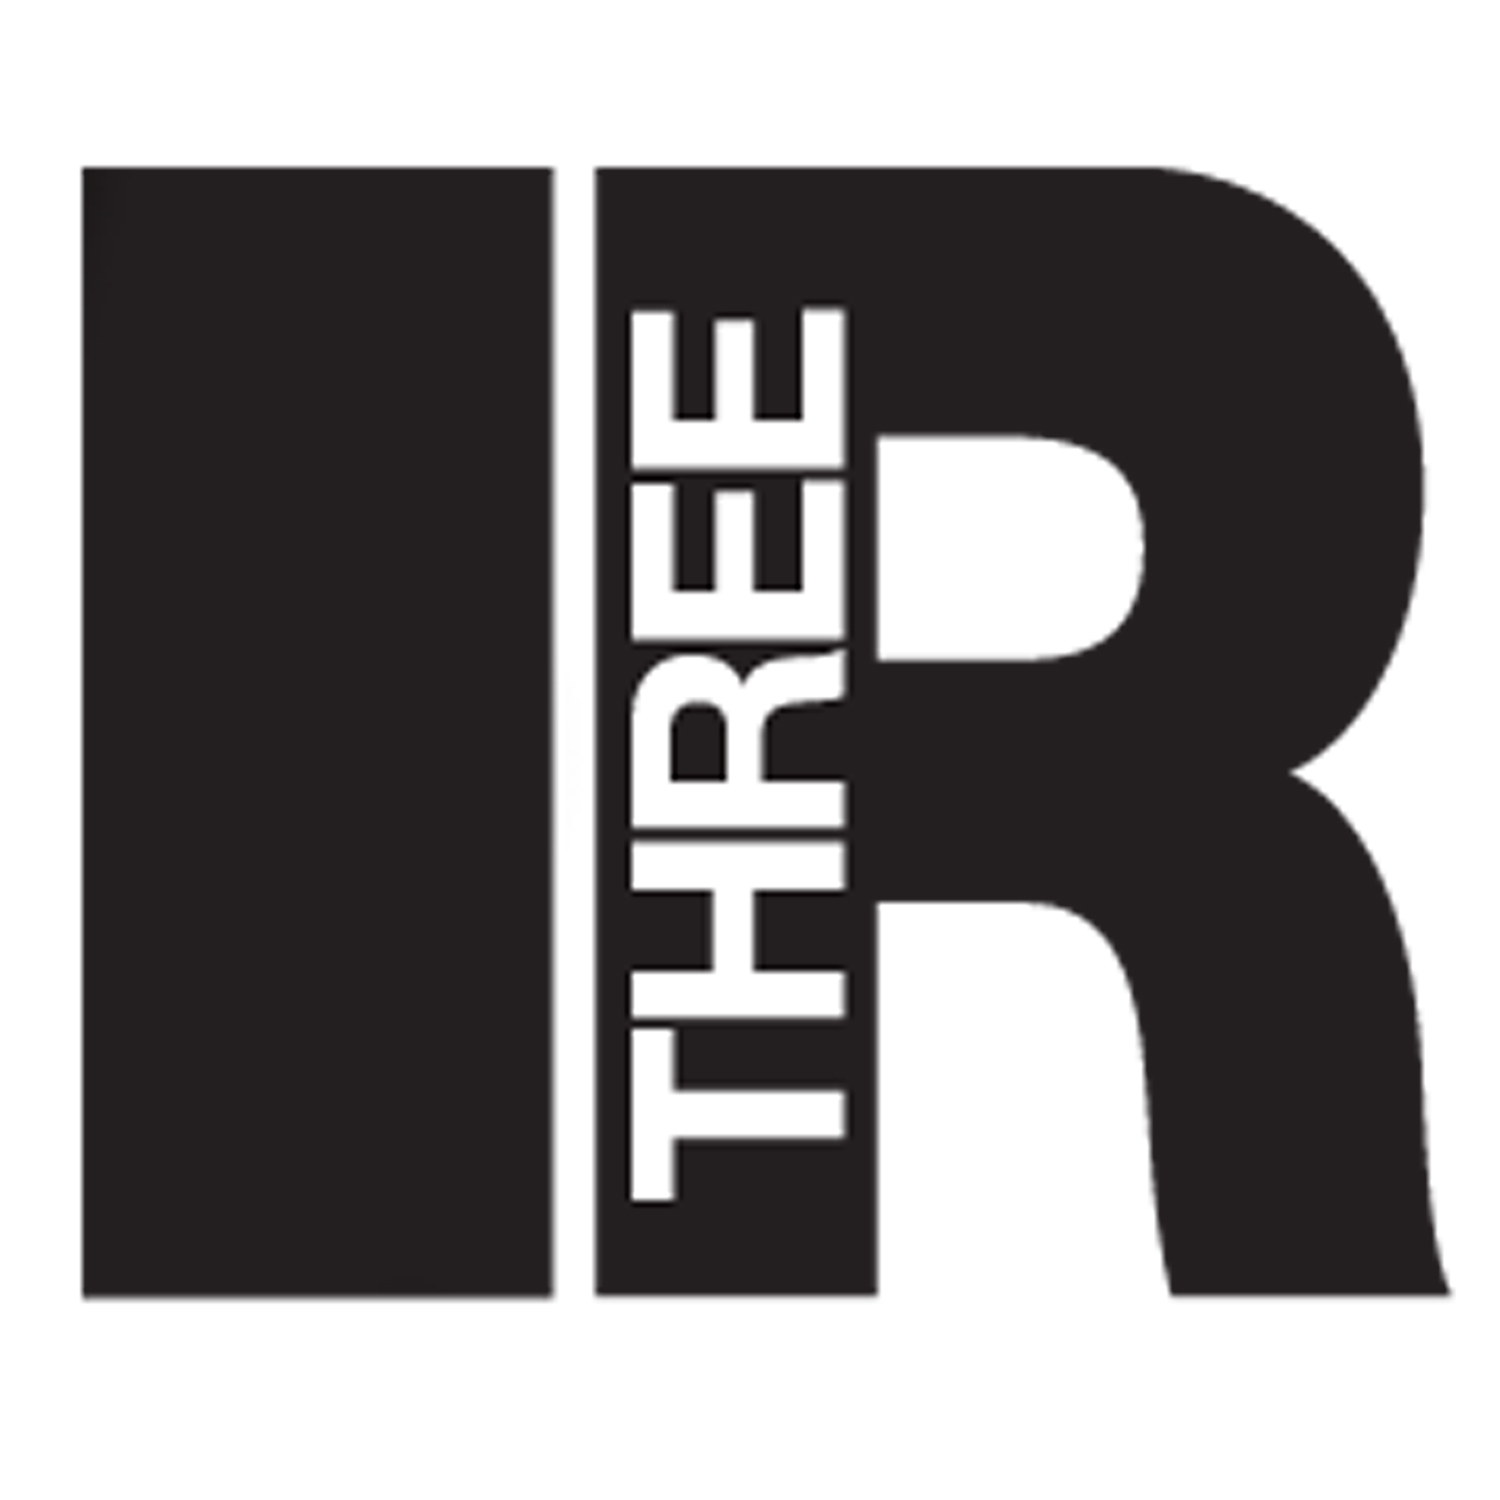 Podcast One - 3RRR show image